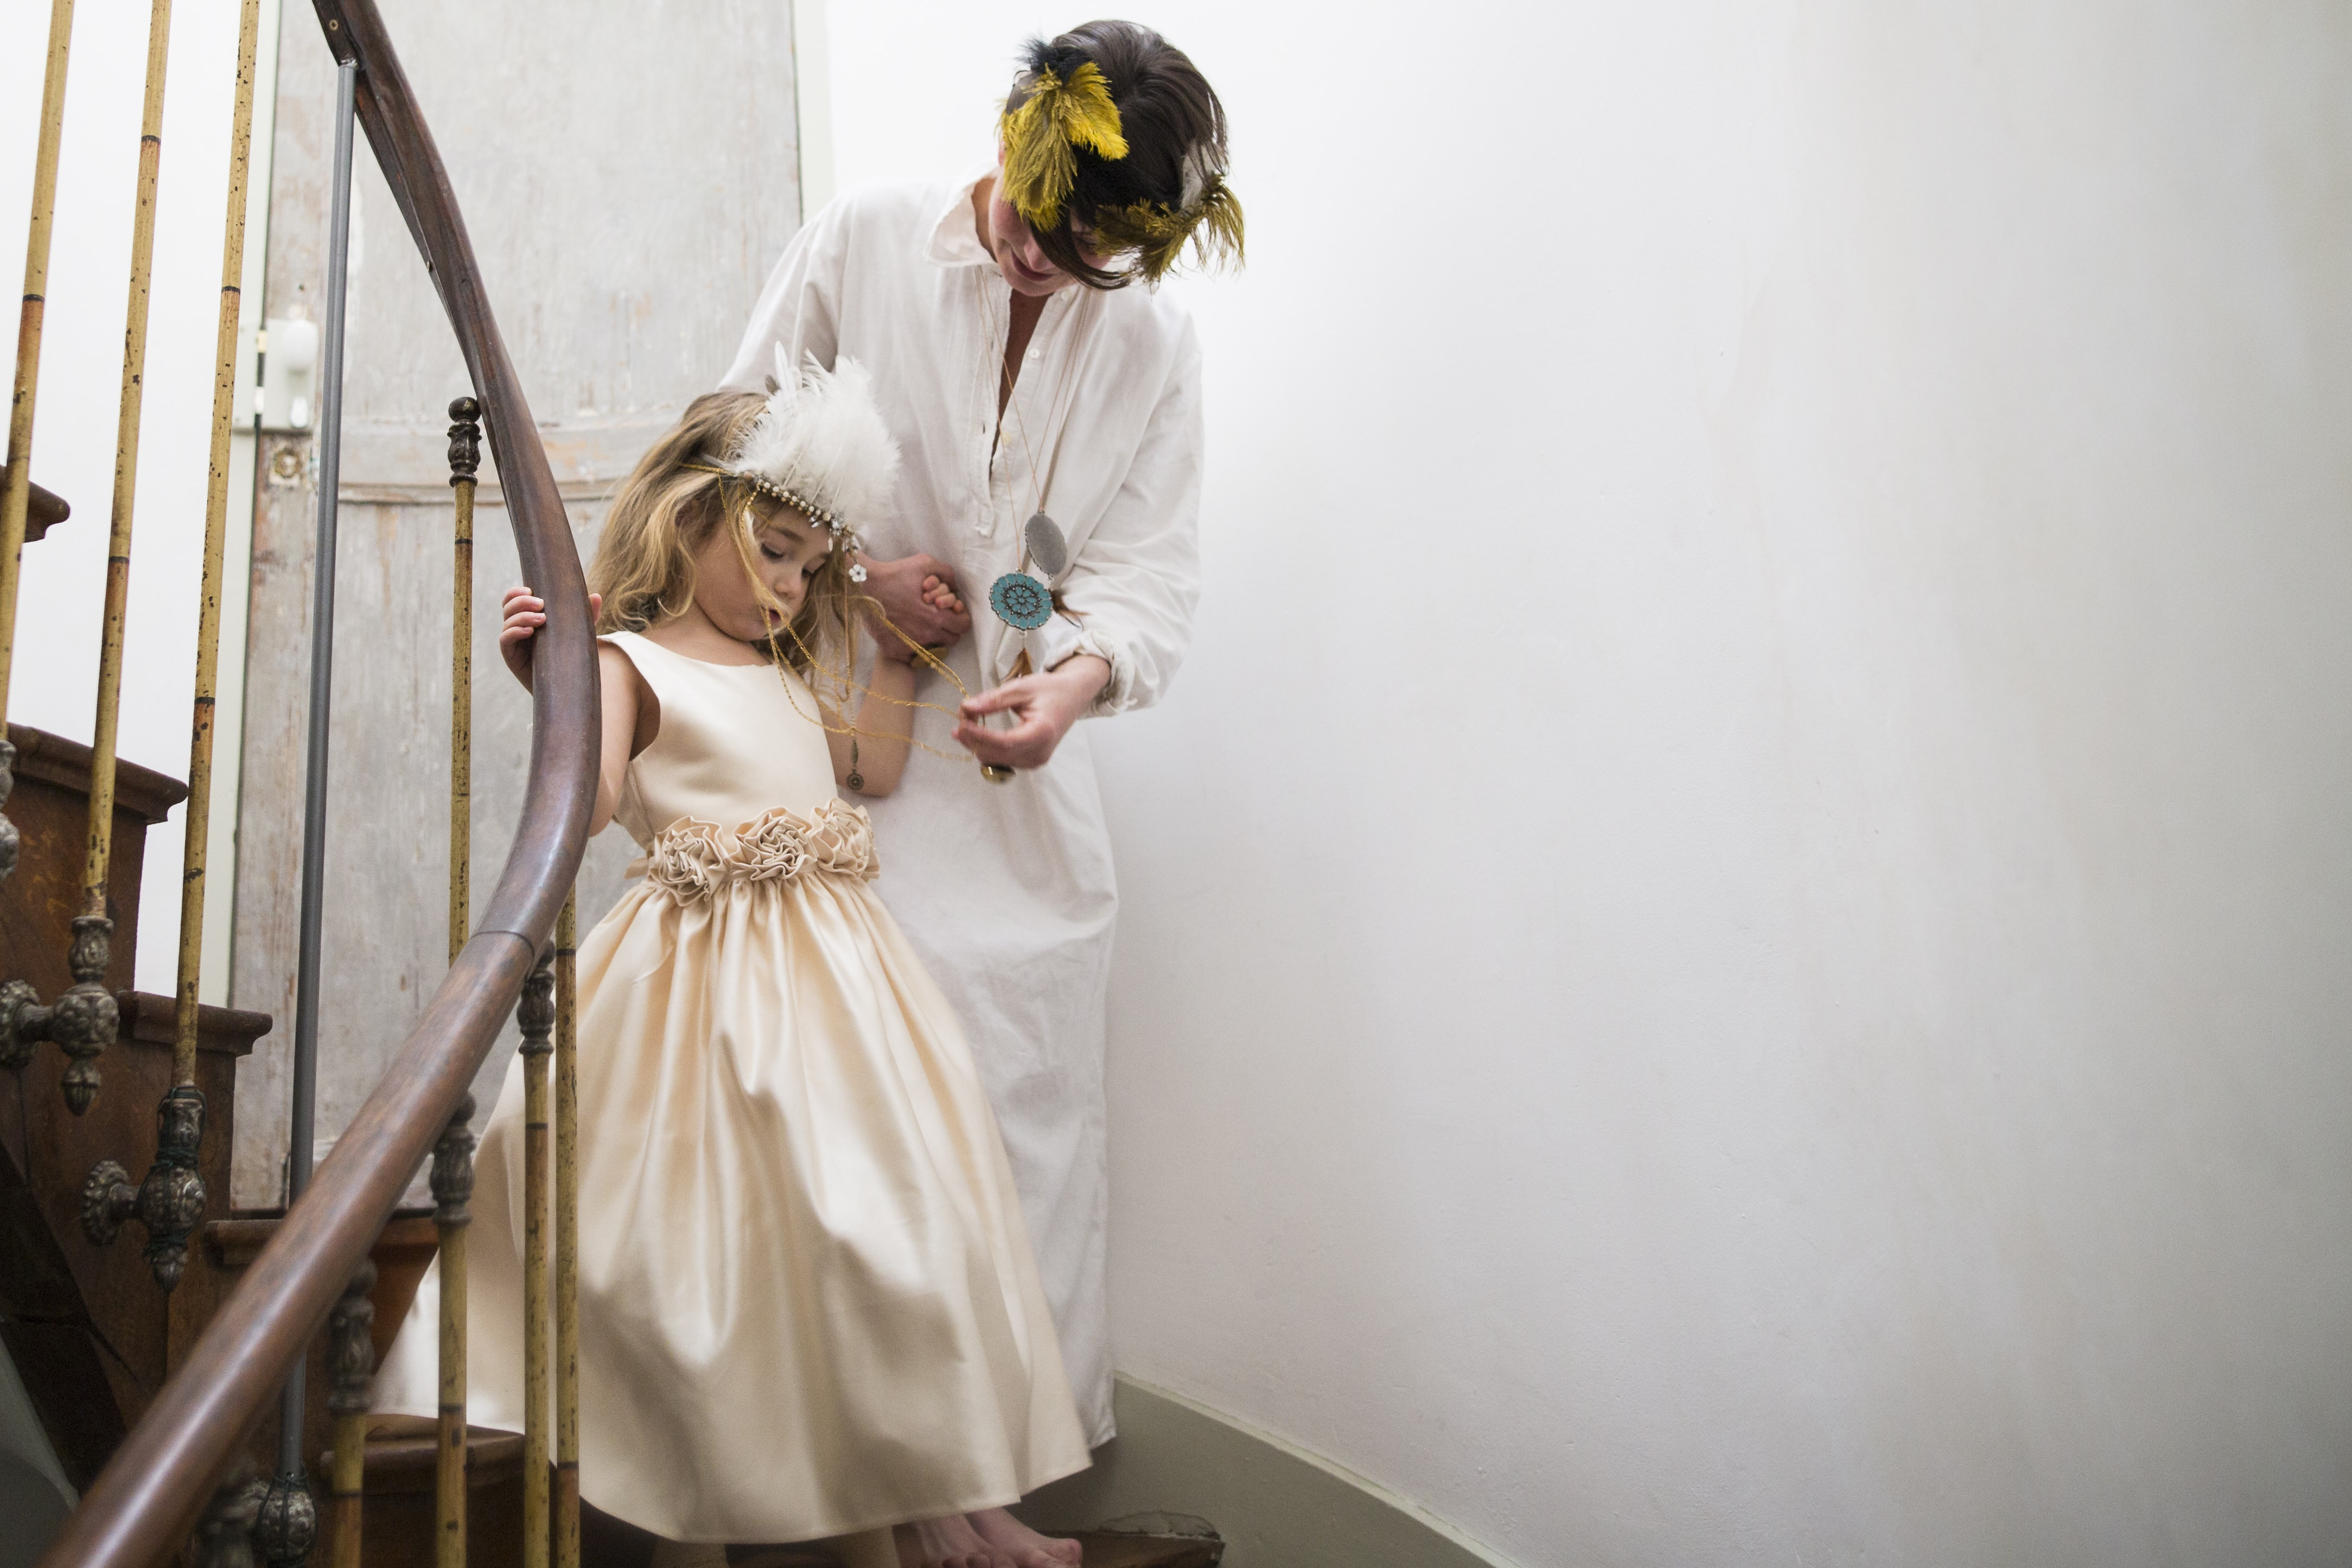 Mother and daughter dressed elegantly in white descending a turn in a staircase.